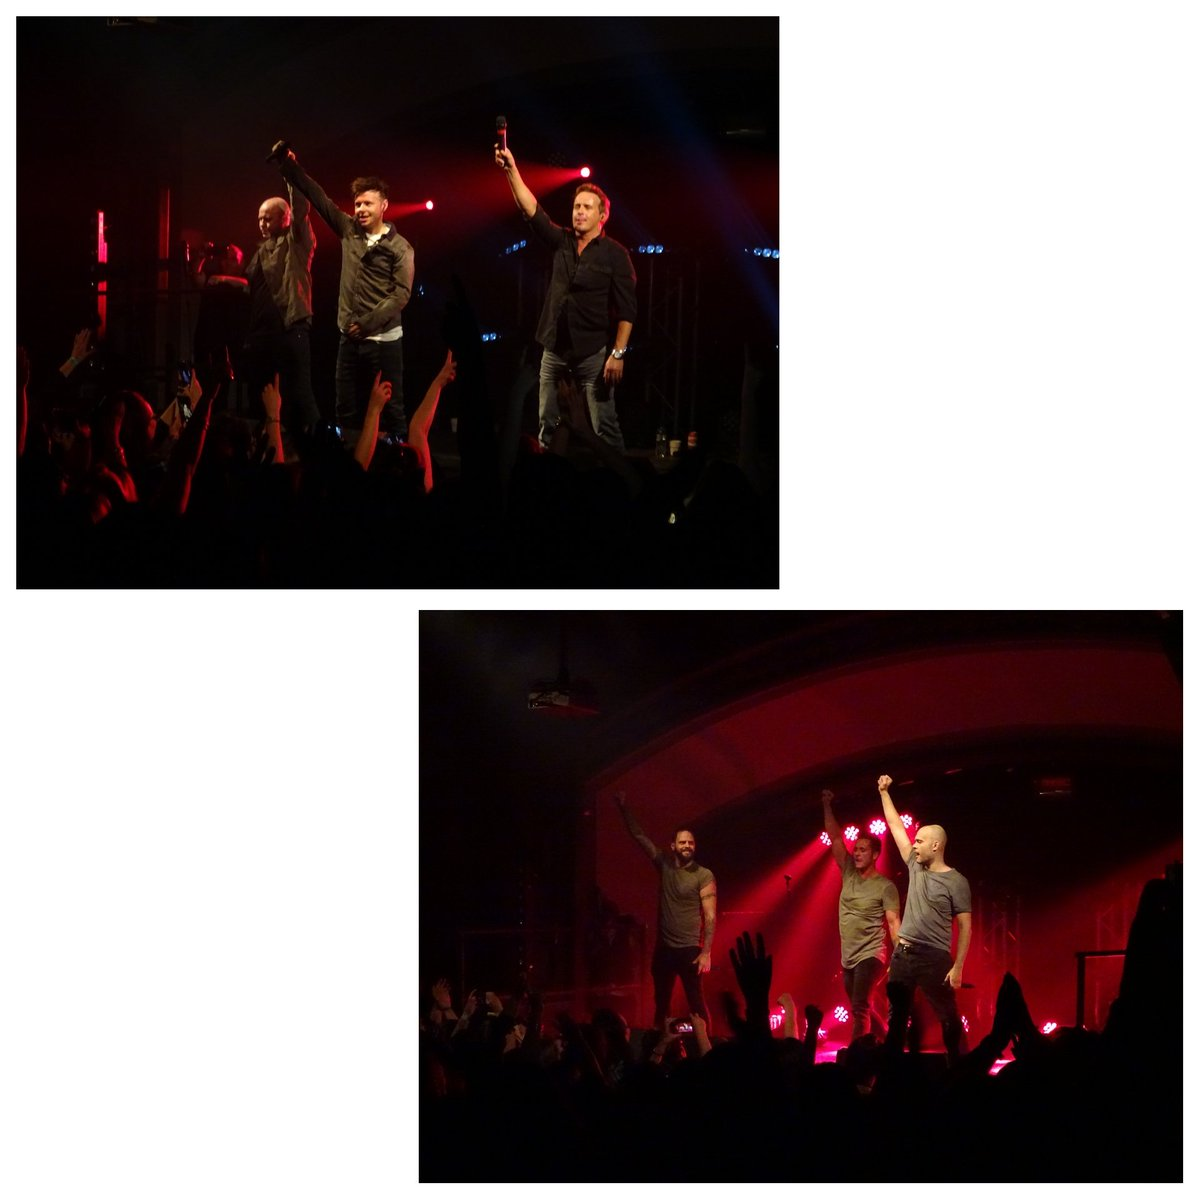 Huge thanks to @911official &amp; @Official5ive for smashing their sets at #BackInTheDay #Glasgow!  Let&#39;s do it all again in March at #Newcastle  <br>http://pic.twitter.com/aOCOtfV6Dd